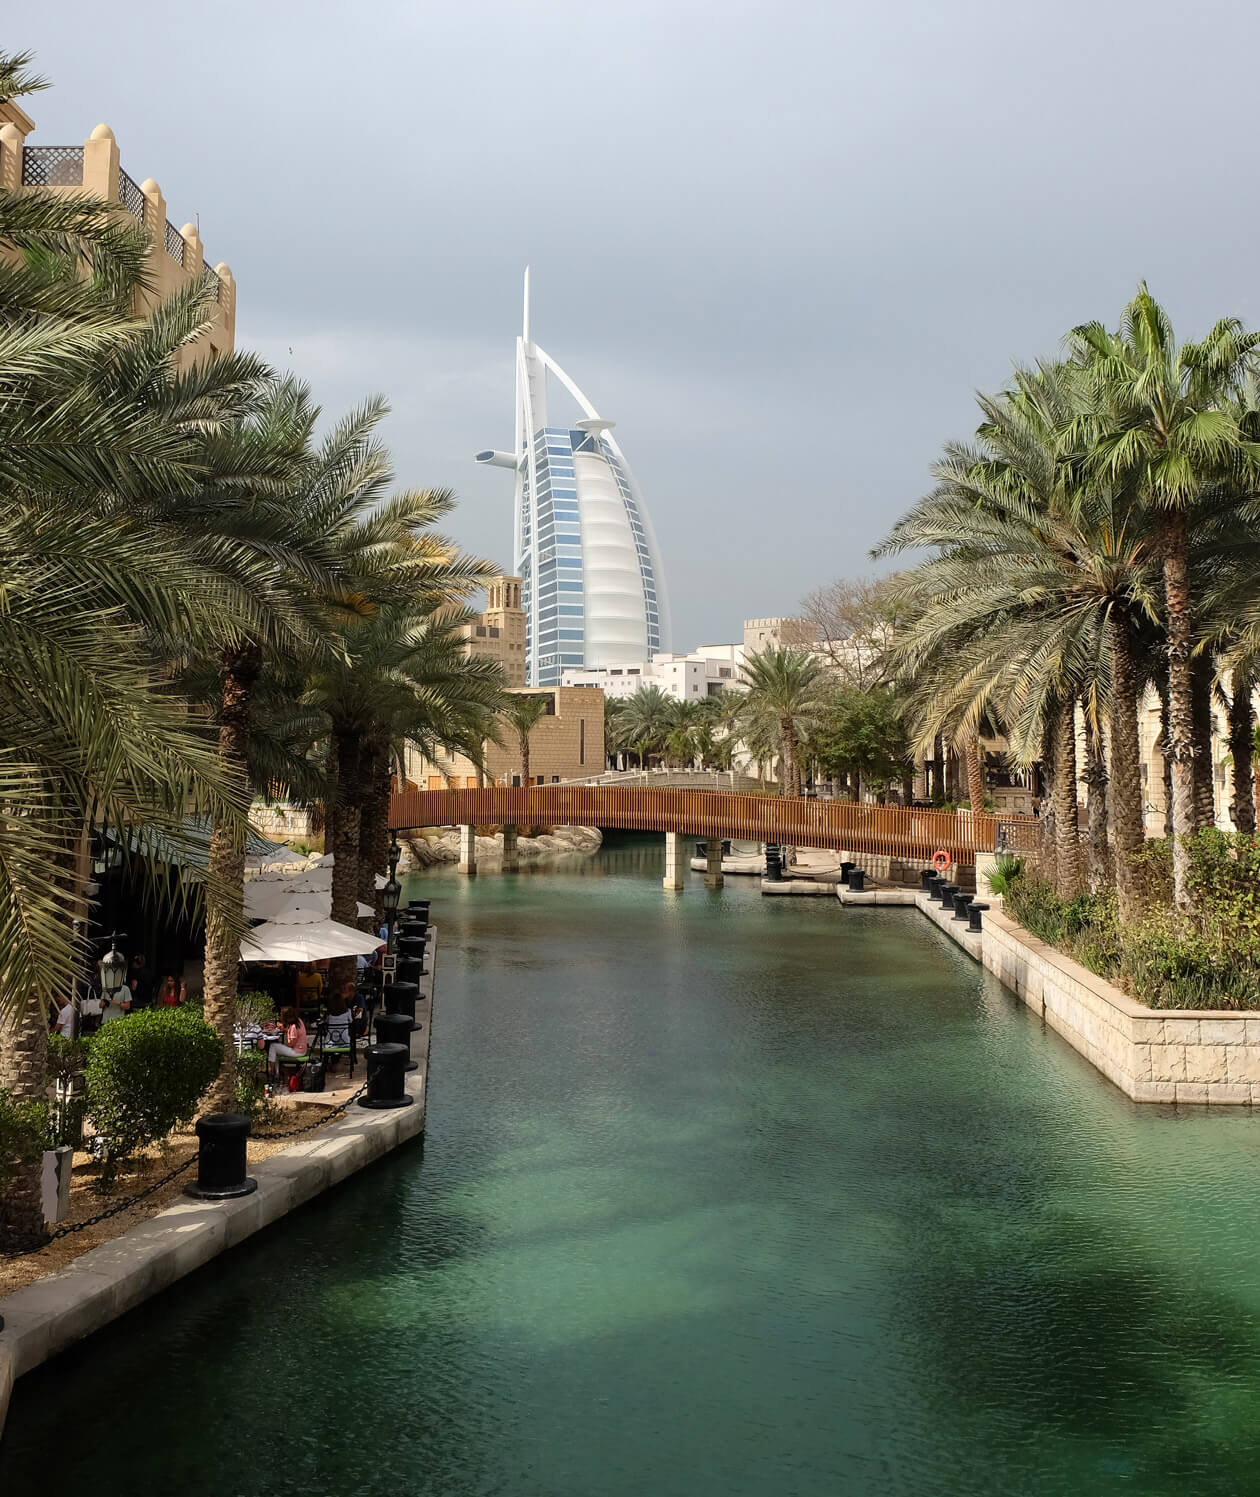 See the Burj Al Arab from the bridges of the watery Souk Madinat Jumeirah